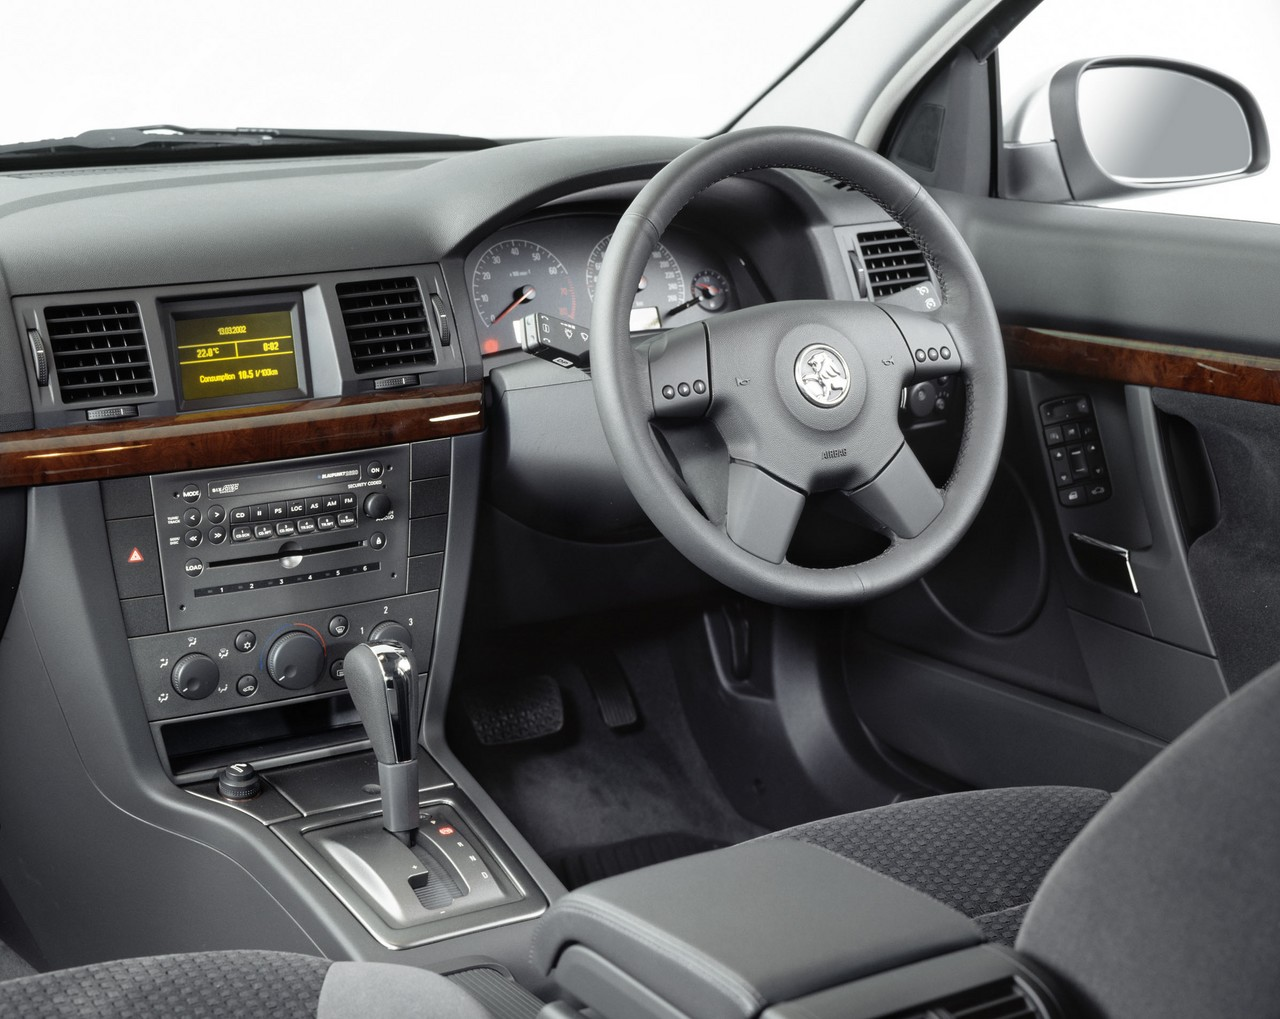 2003 holden vectra images hd cars wallpaper buyers guide holden zc vectra 2003 05 vanachro images vanachro Choice Image